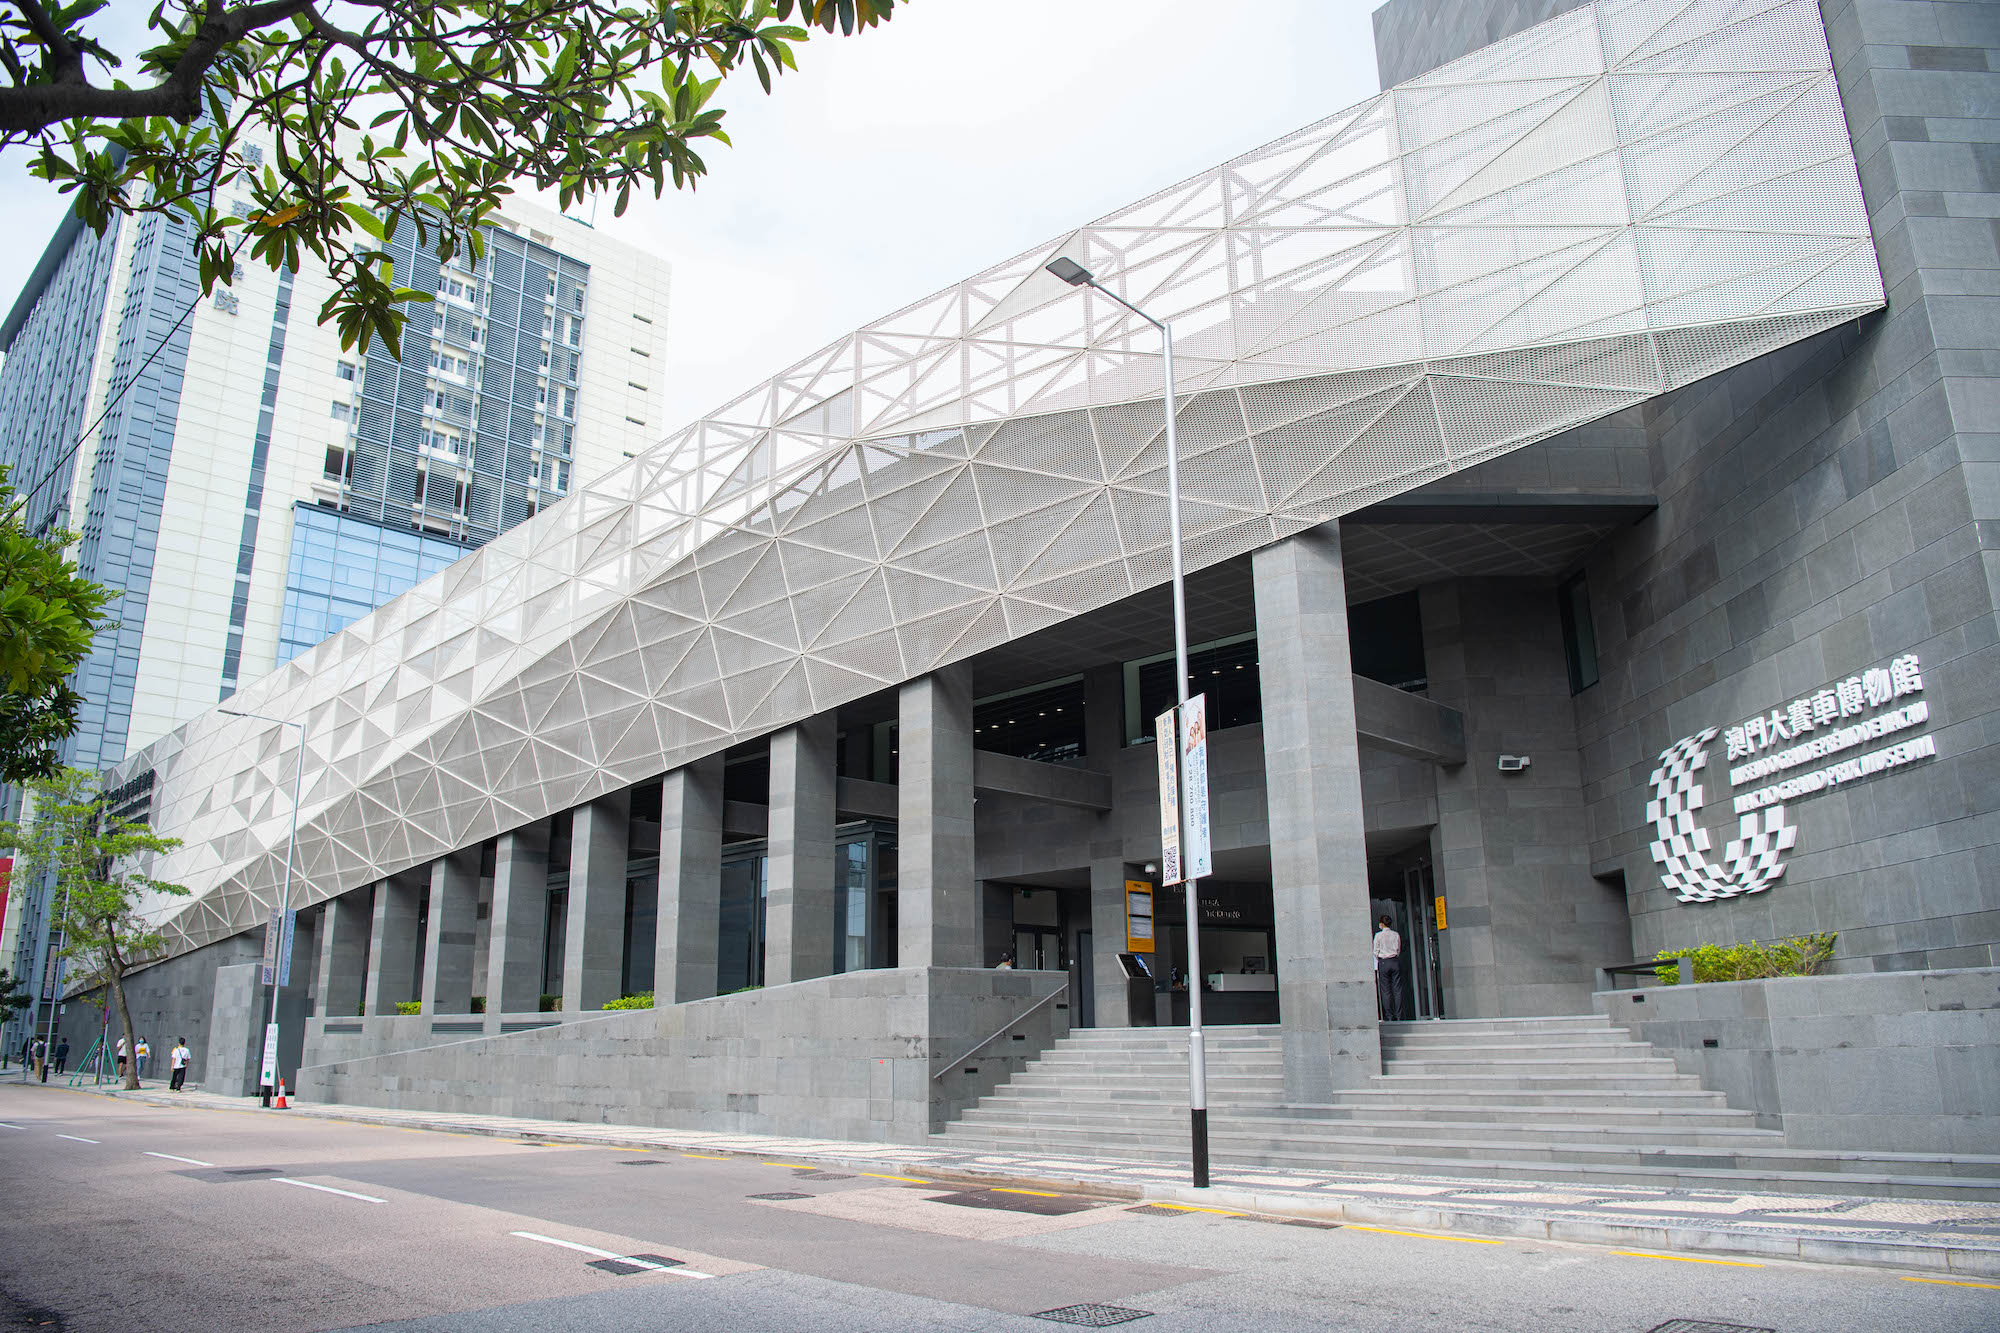 The newly renovated exterior of the Macao Grand Prix Museum